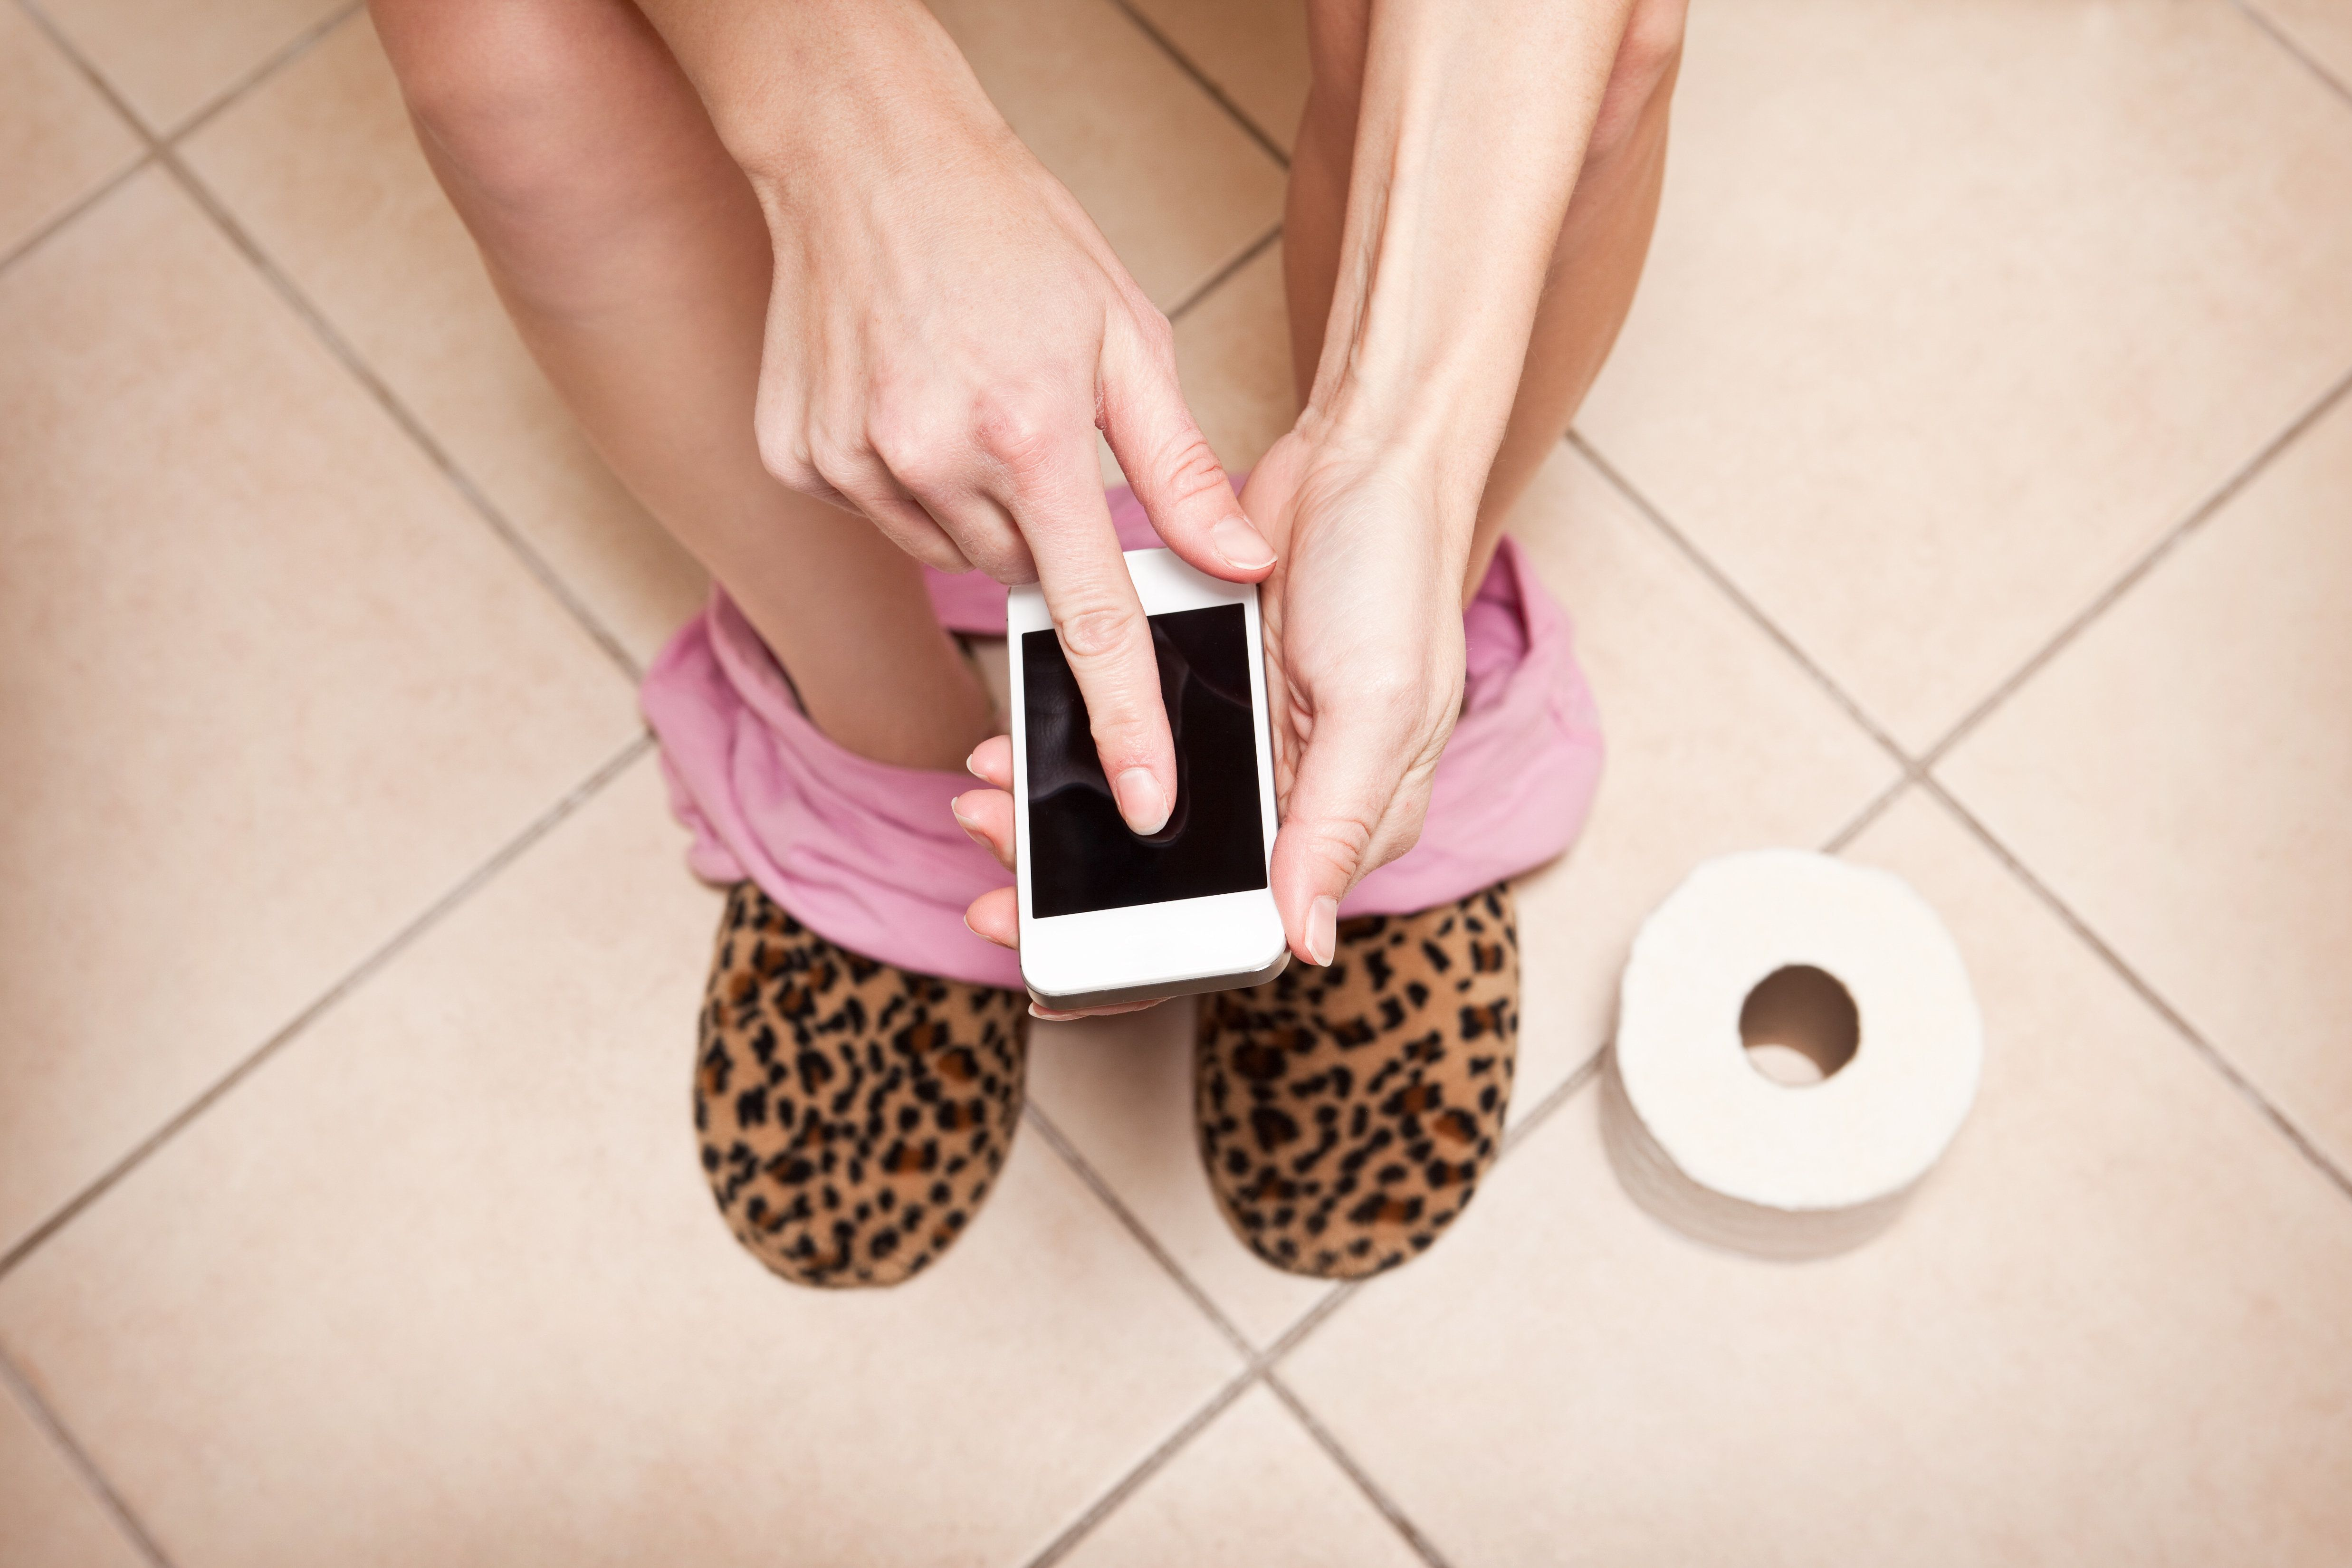 Using Your Phone On The Toilet Could Be Making You (And Your Kids) Sick